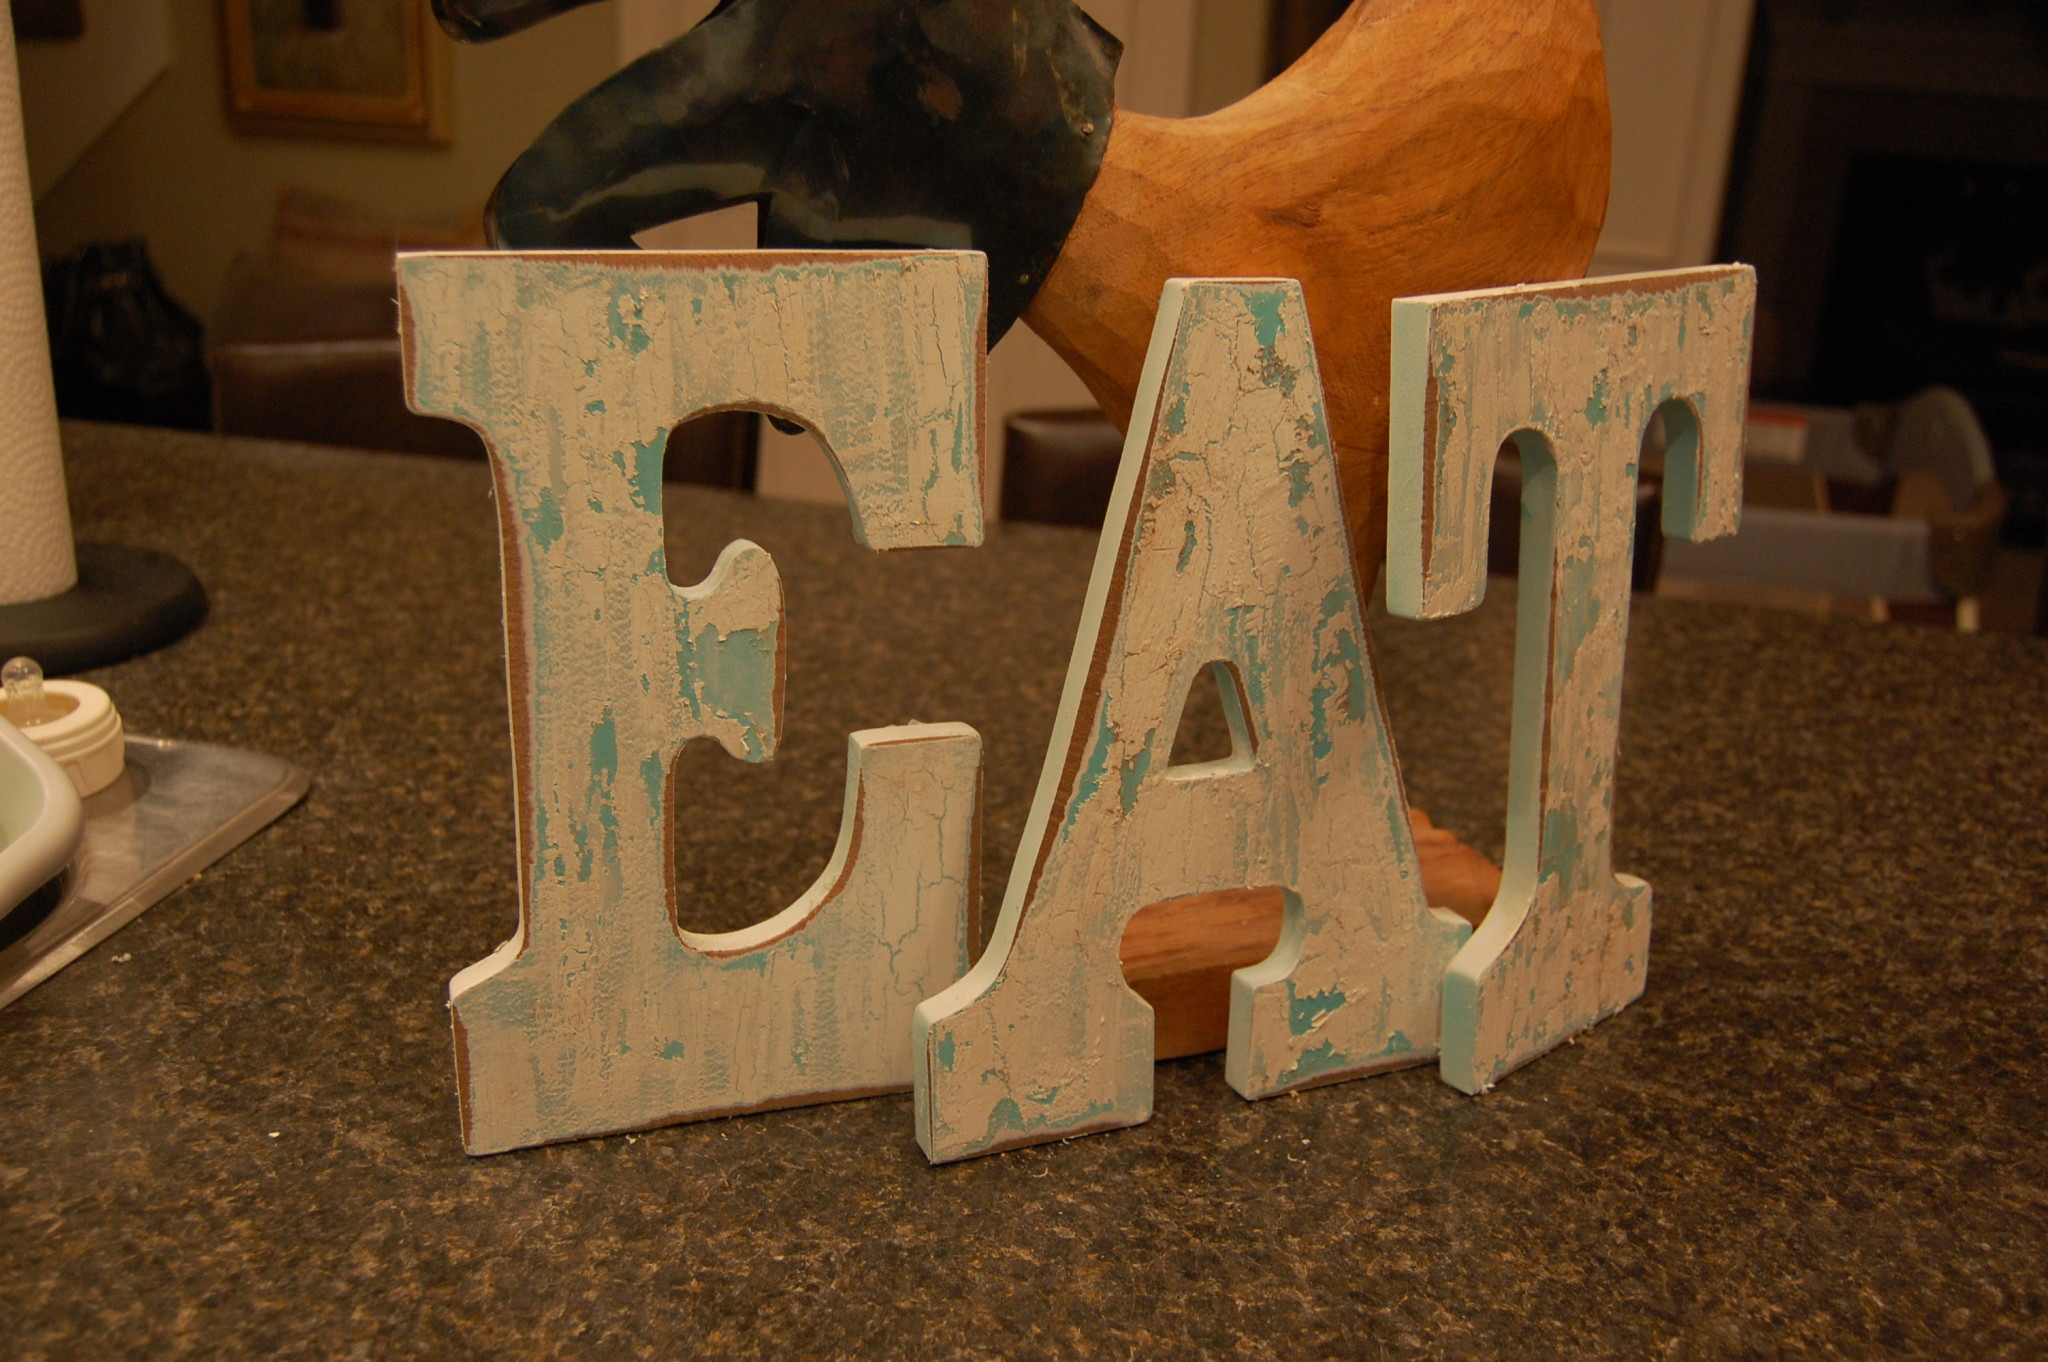 Vintage-Inspired EAT Letters - A Pop of Pretty Home Decor Ideas on eat in galley kitchen designs, eat in dining room, eat at kitchen islands, dining room ideas, eat in kitchen countertops, eat in kitchens with bench seating, eat in kitchen cabinets, eat in kitchen with bay window, eat at island designs, eat on kitchen island, eat in kitchen makeovers, eat in small kitchens, eat in breakfast ideas, eat in kitchen light, eat in kitchen lighting, eat in country kitchen designs, eat in kitchen tables, eat in kitchen plans, eat in kitchen layouts,